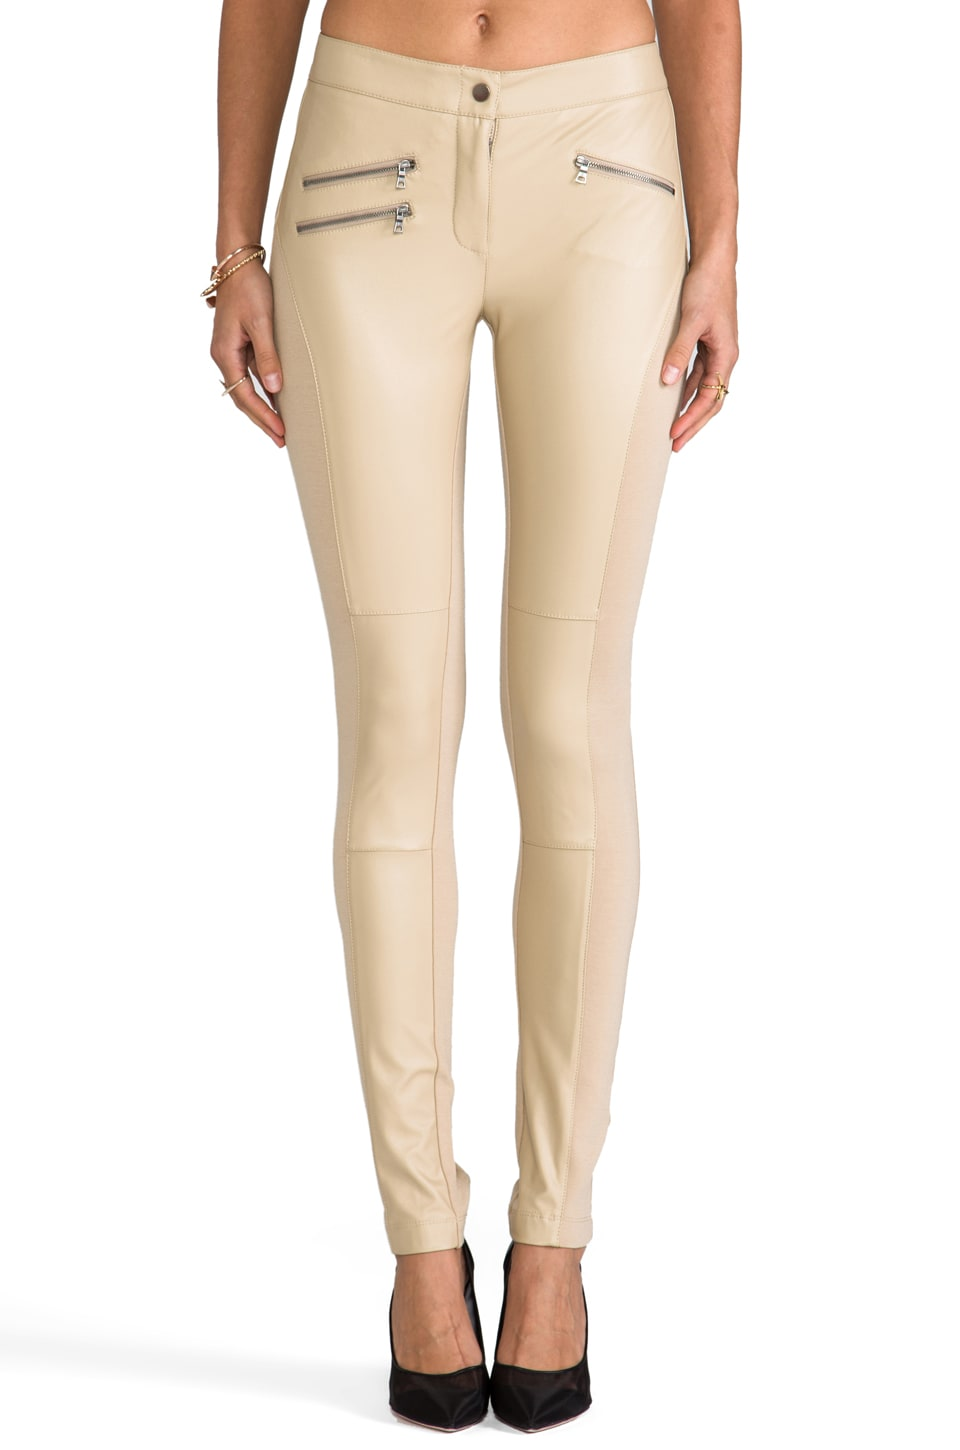 BCBGMAXAZRIA Stephen Pants in Khaki